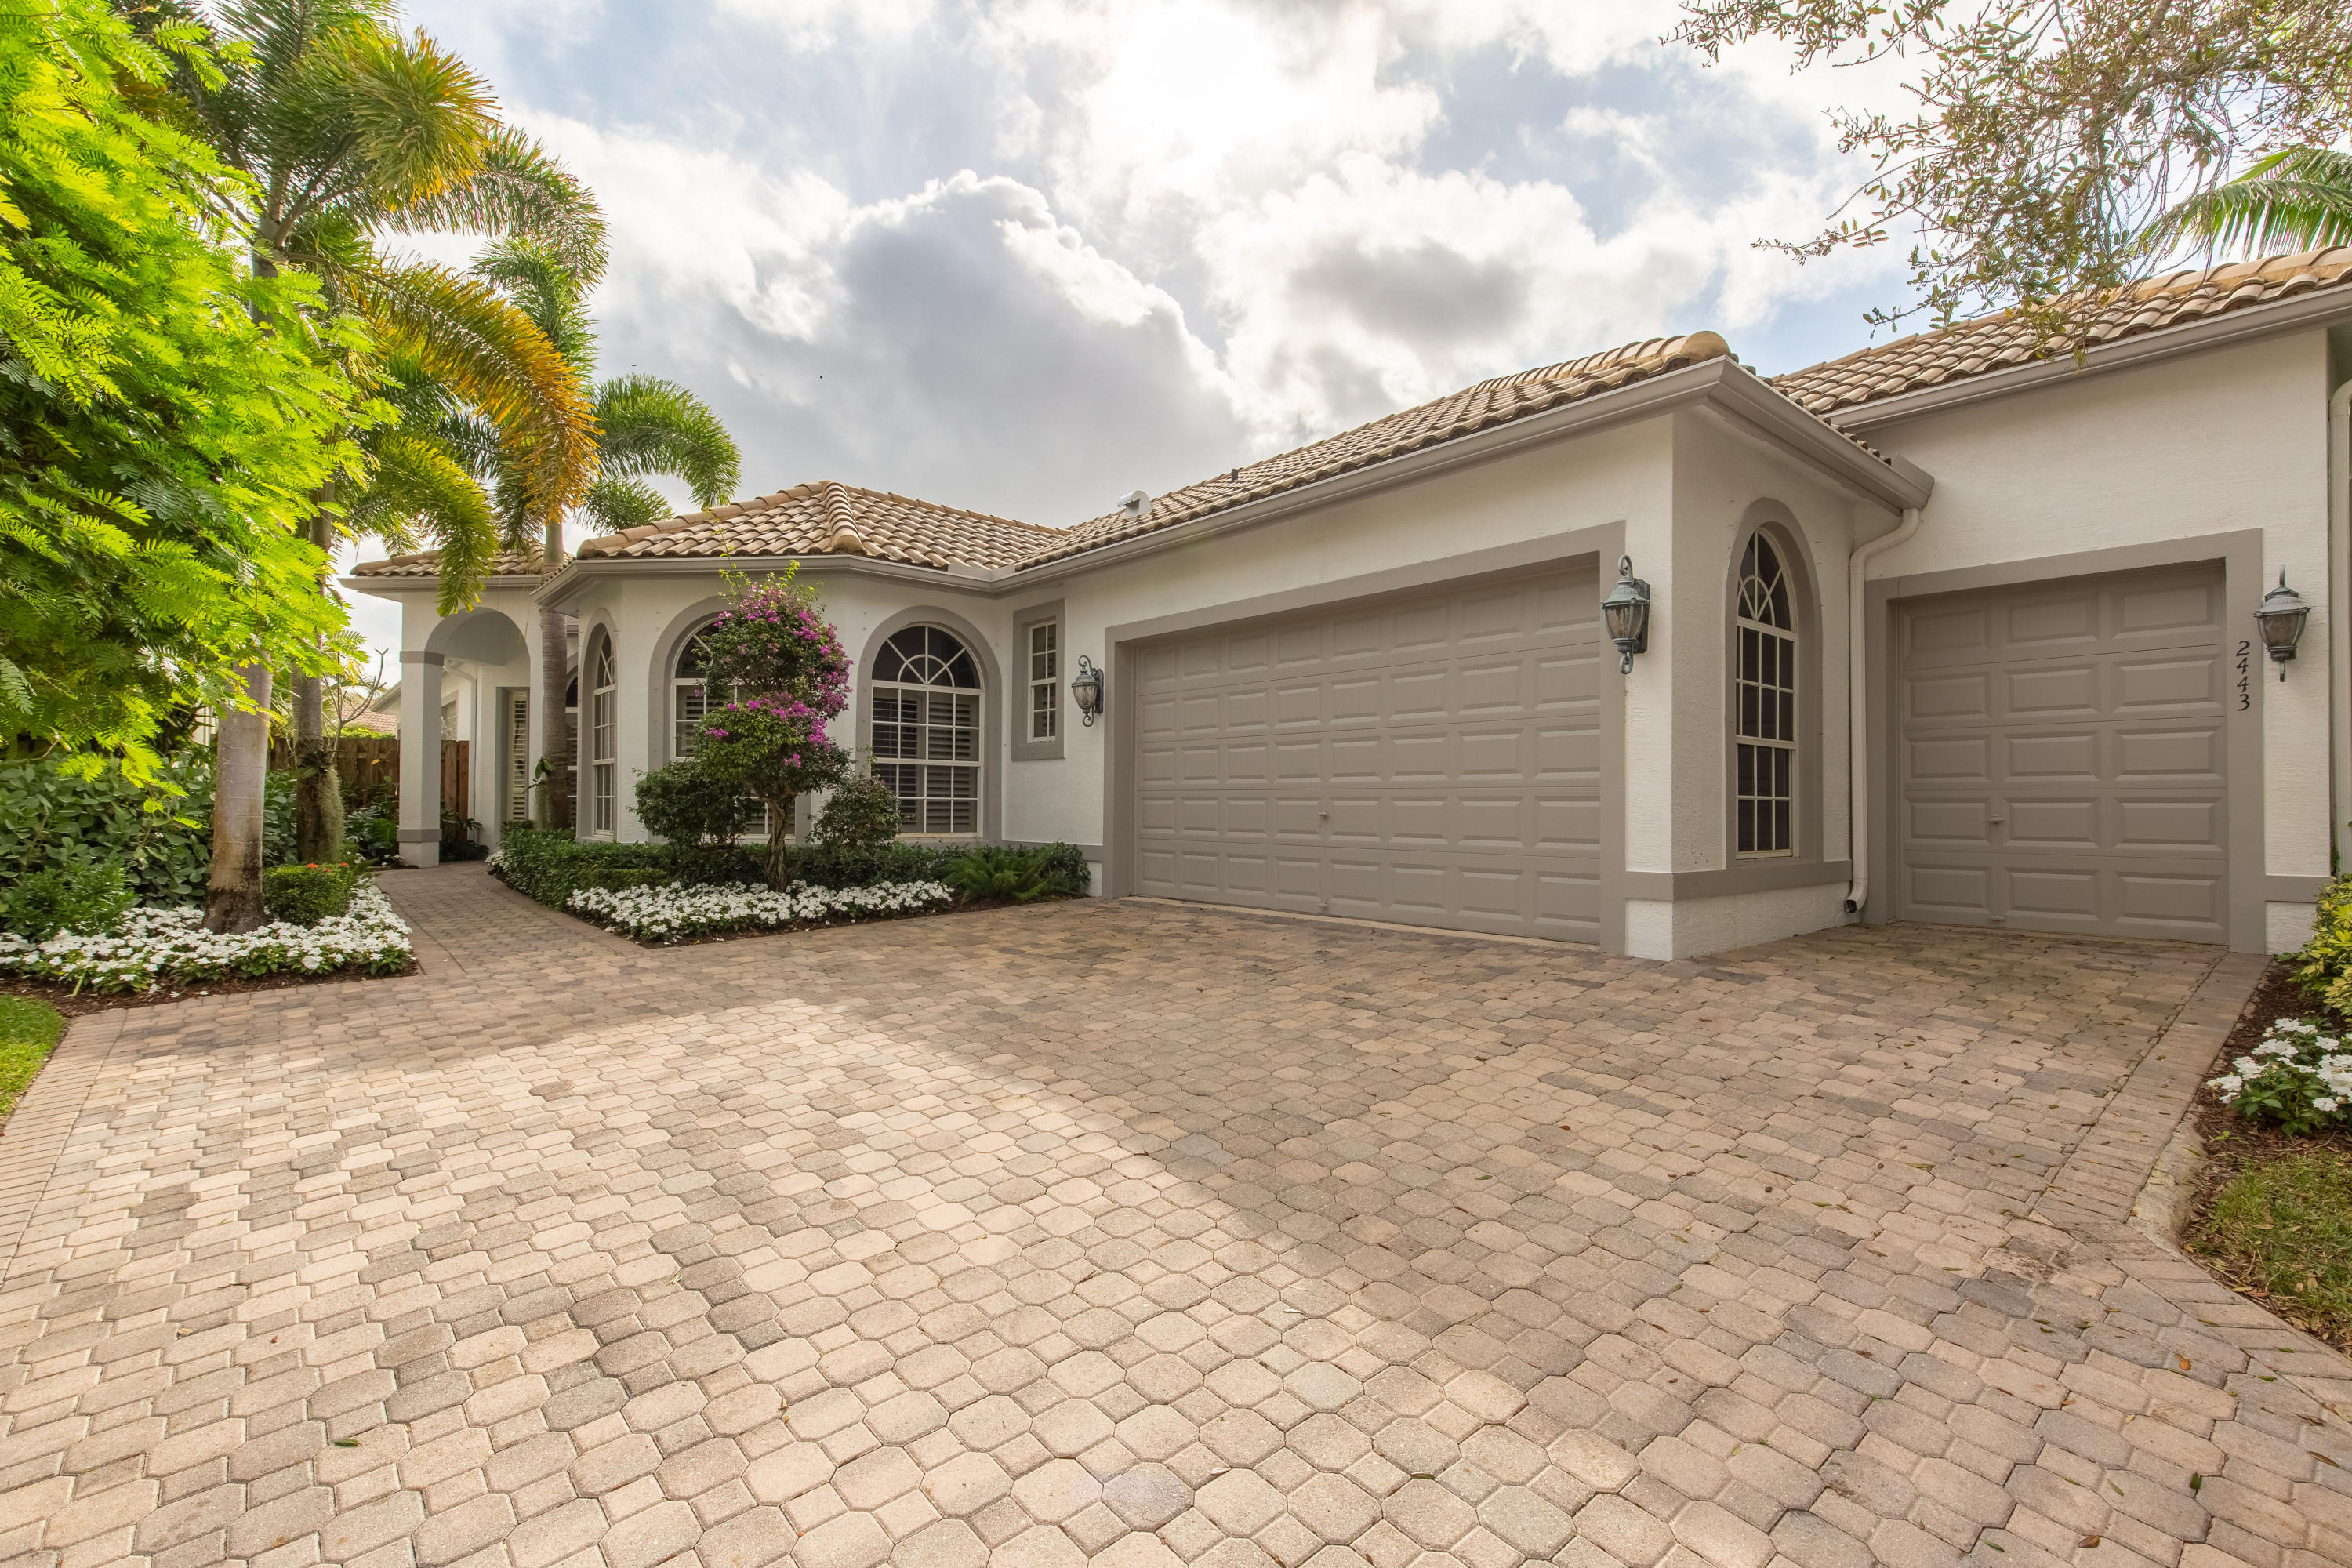 2443 Players Court, Wellington, Florida 33414, 3 Bedrooms Bedrooms, ,3 BathroomsBathrooms,Single Family,For Sale,PALM BEACH POLO,Players,RX-10592239